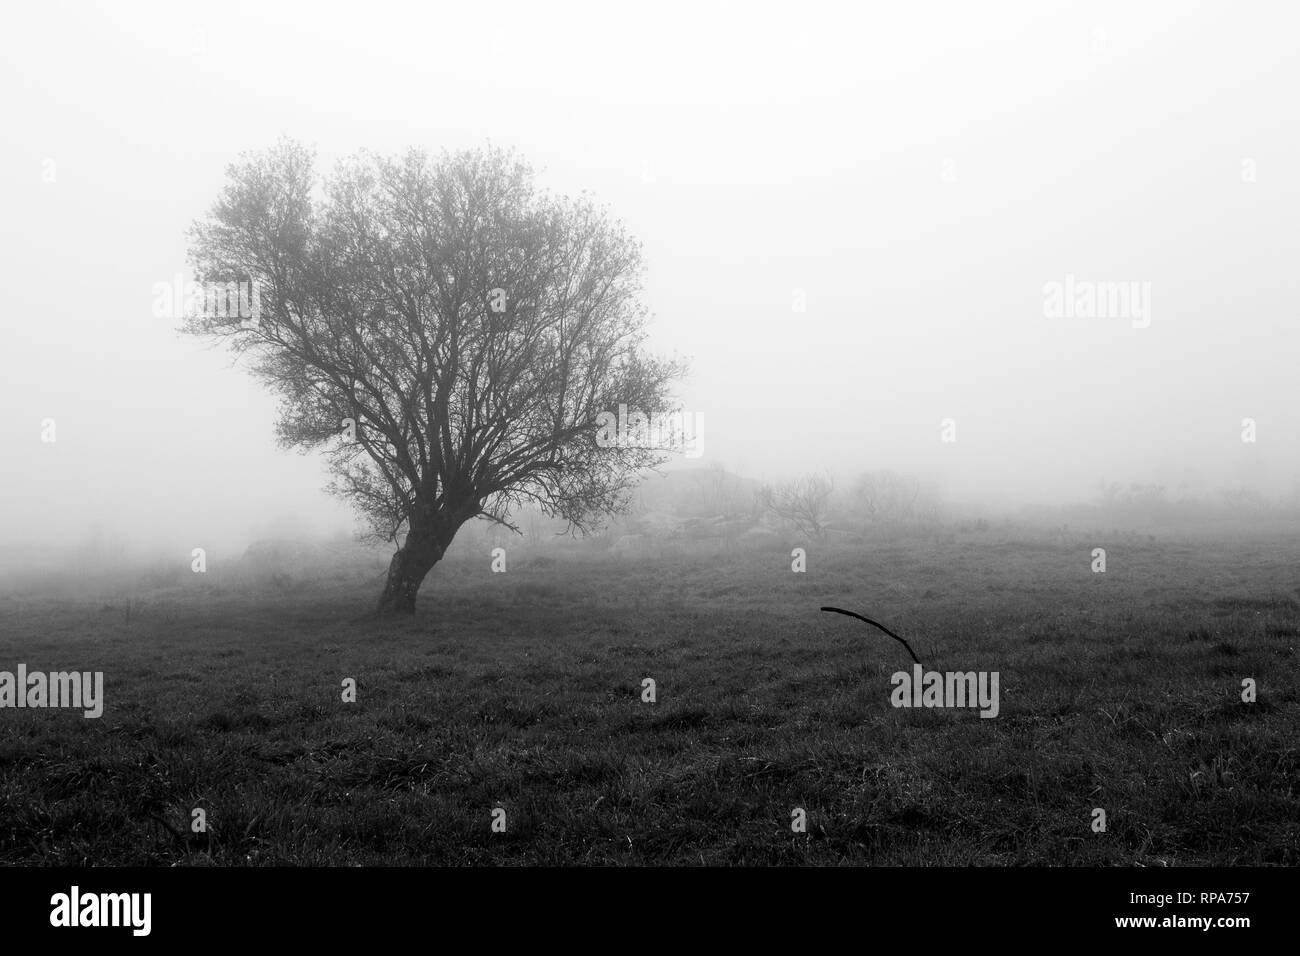 Lonely tree in a foggy morning - Stock Image